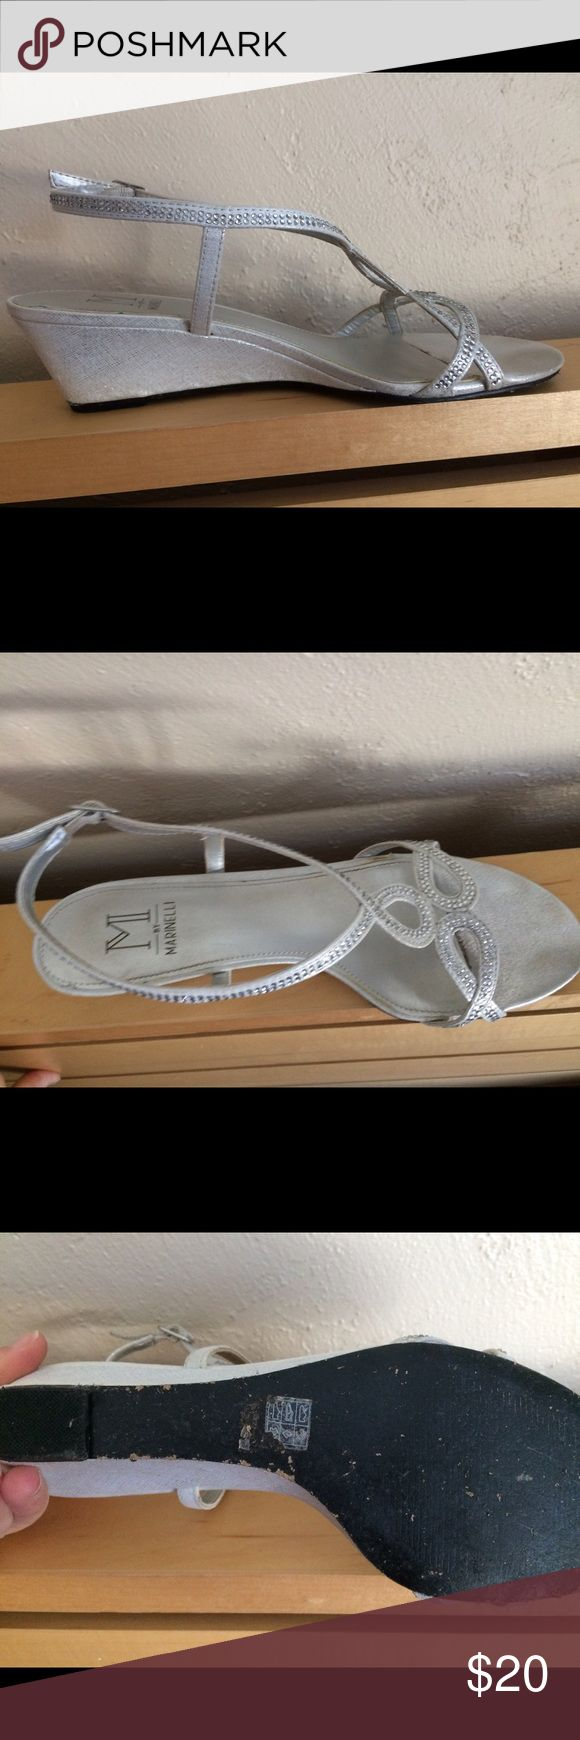 Size 8 silver dress shoe wedge Very cute silver wedge dress shoe with rhinestone accents. Worn for a few hours at a wedding. The bottoms took quite a beating from walking all over gravel, but they otherwise are in pretty good condition. Shoes Heels